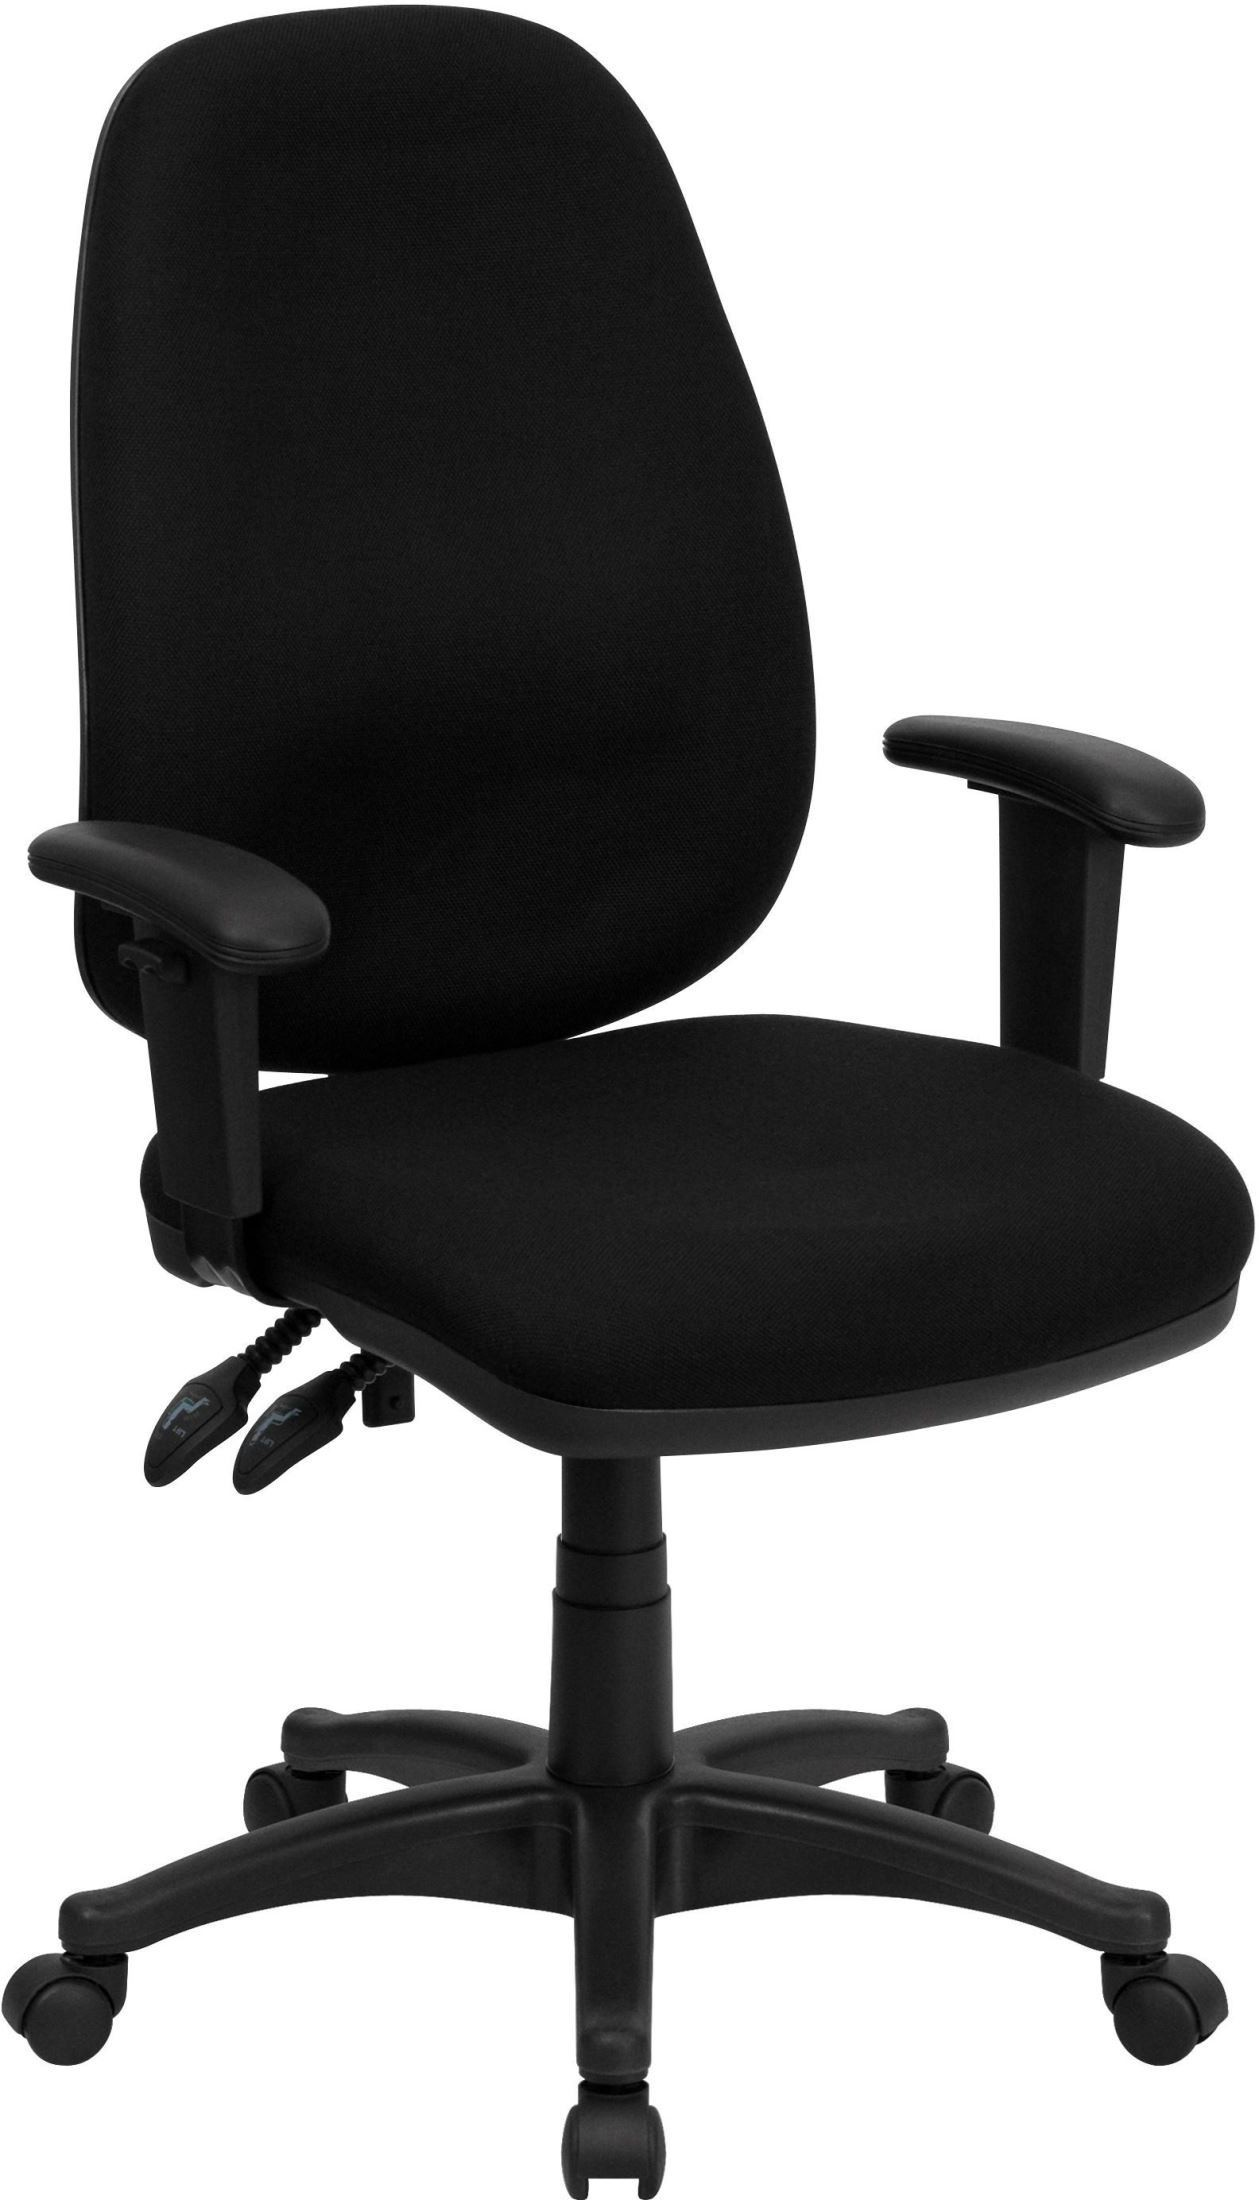 high back chairs with arms mesh gaming chair pm3000 black ergonomic computer arm min order